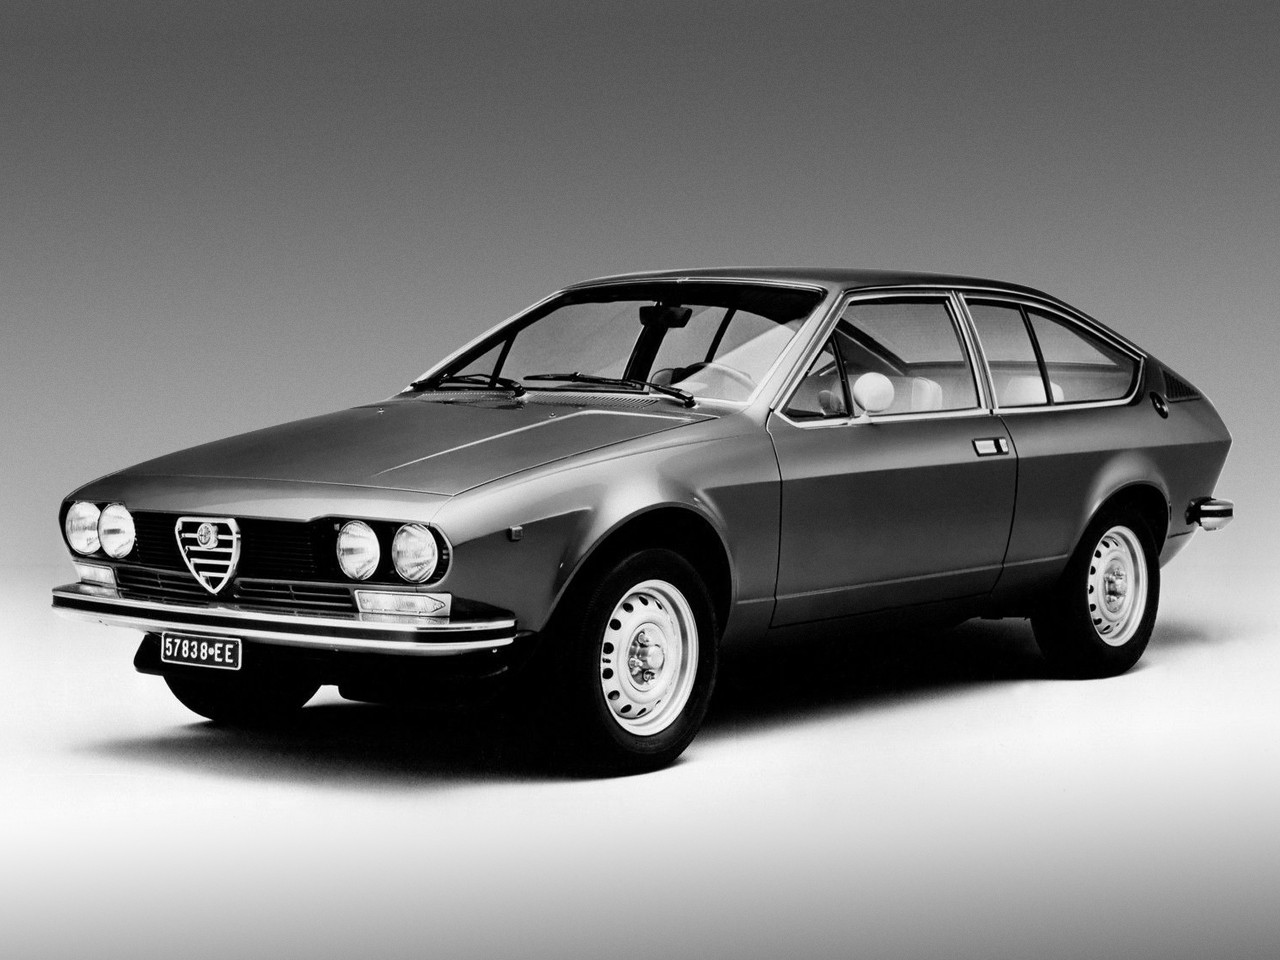 alfa romeo alfetta gt specs photos 1974 1975 1976 1977 1978 1979 1980 autoevolution. Black Bedroom Furniture Sets. Home Design Ideas